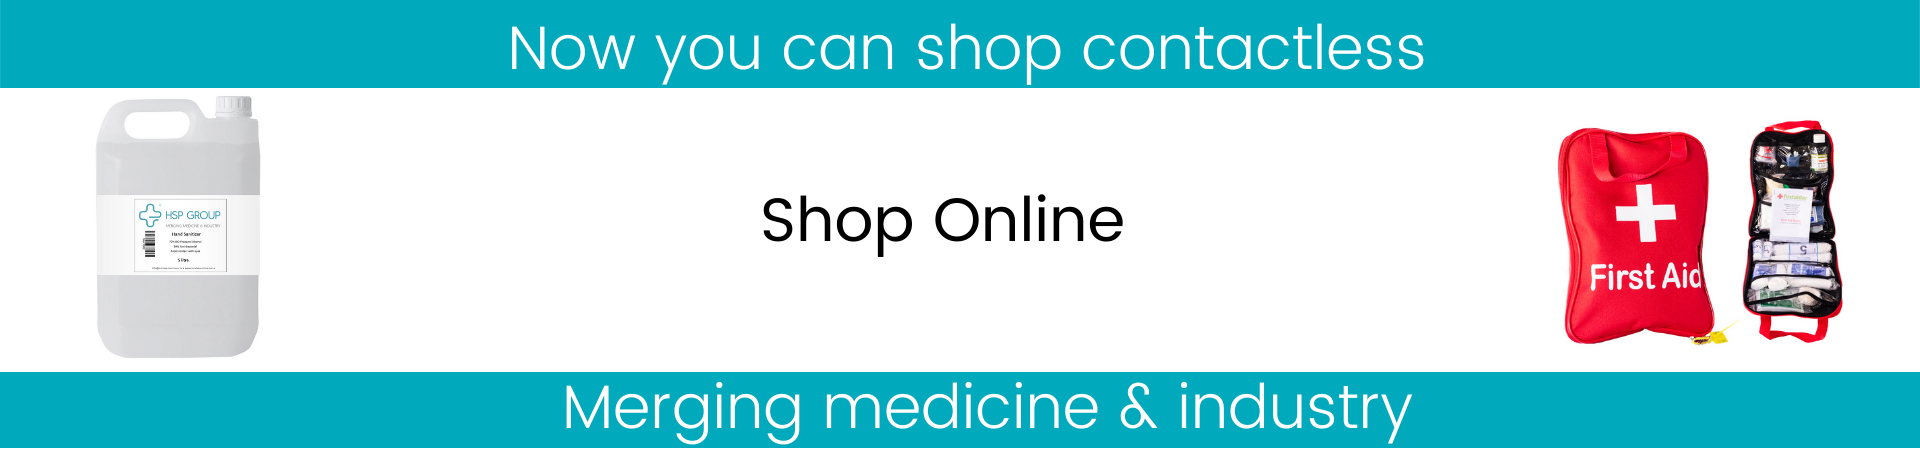 online shop first aid kits ppe